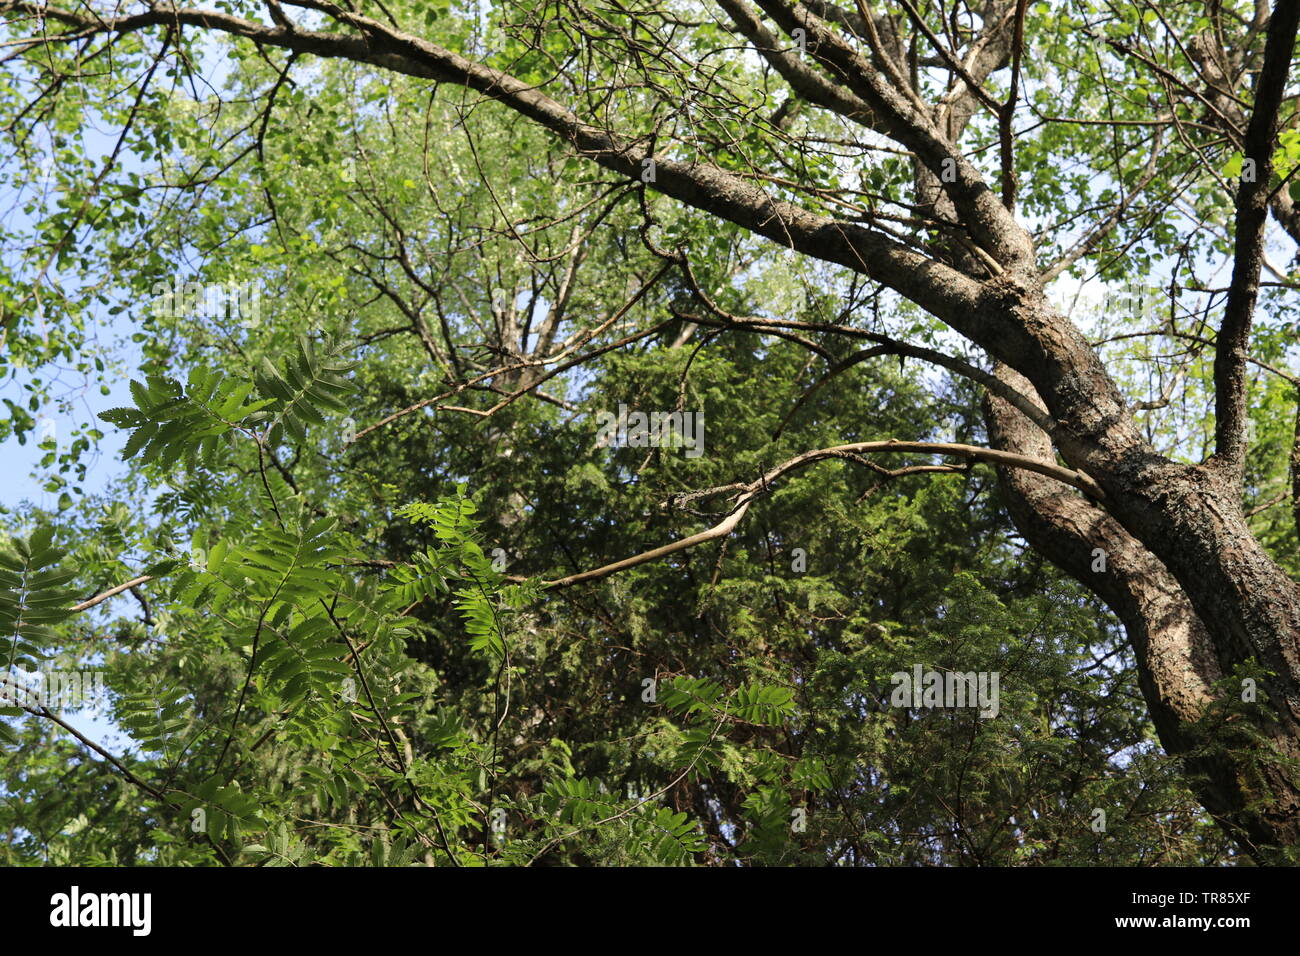 A wiggling tree trunk midst trees of several shades of green. Stock Photo